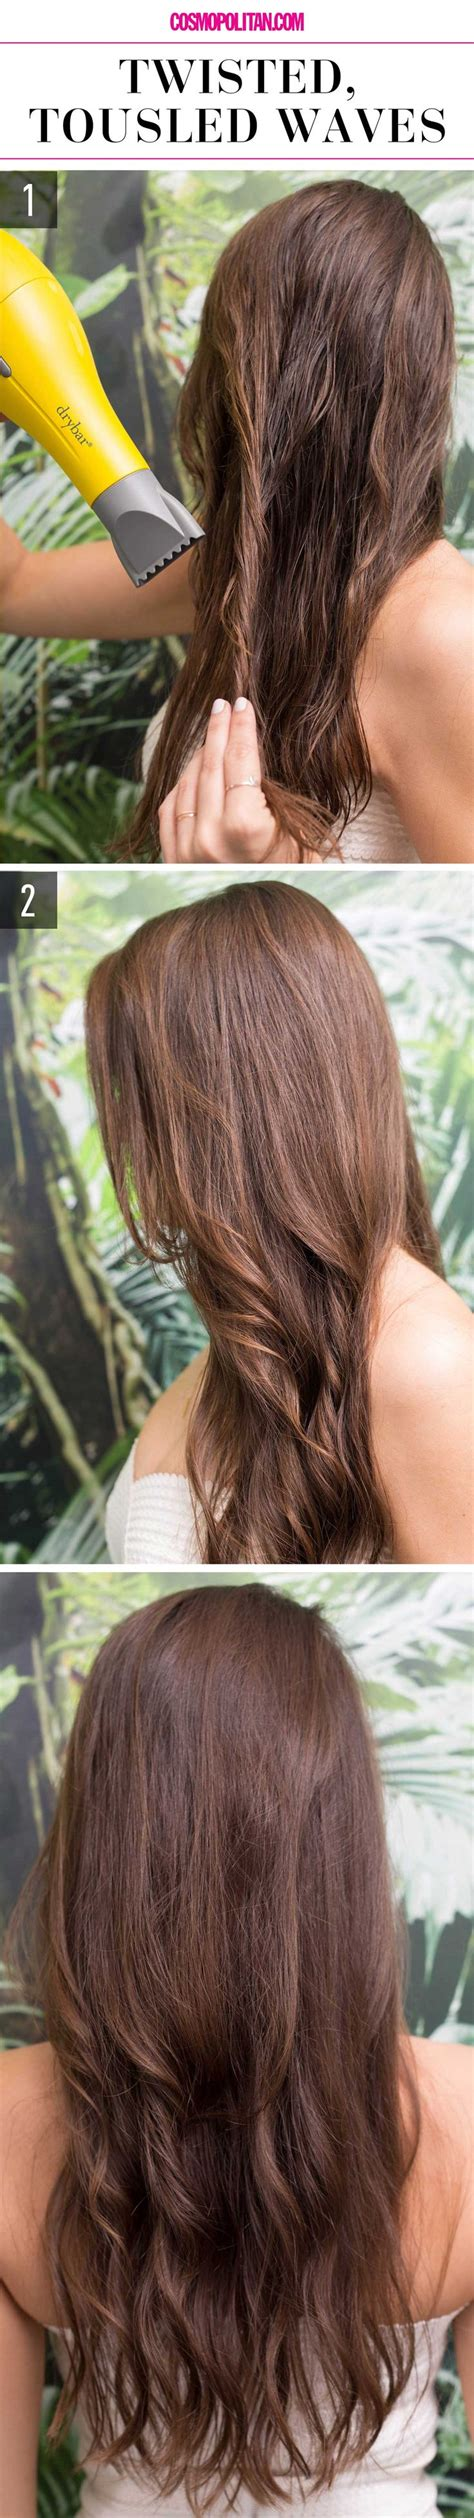 easy lazy hairstyles for school best 20 5 minute curls ideas on fast curls easy curls and curls